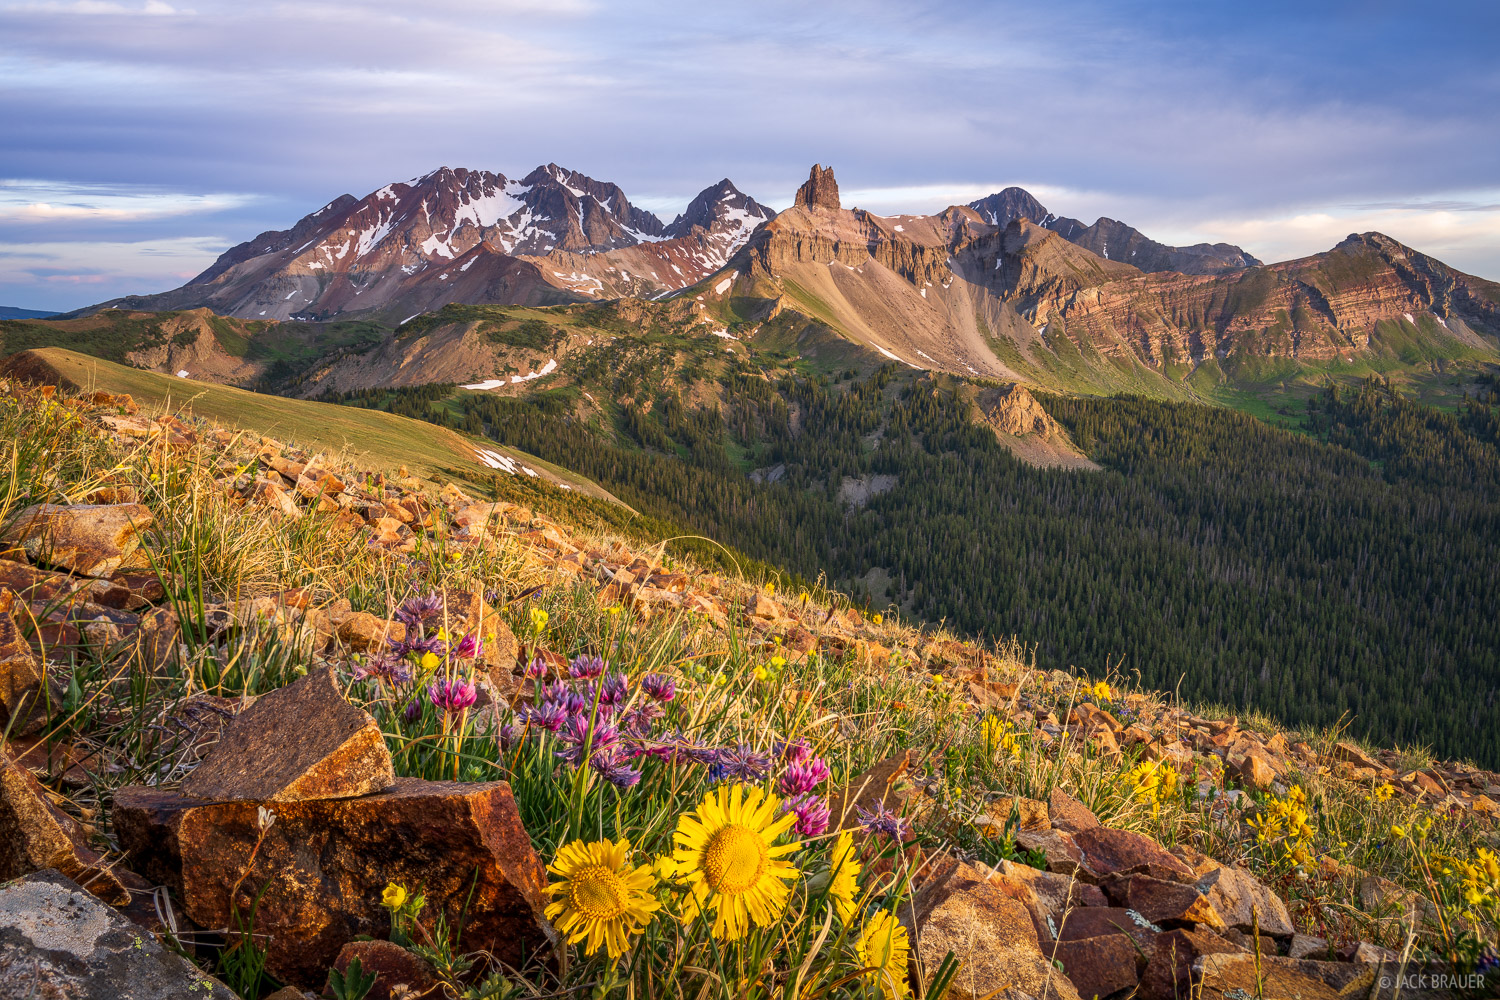 Black Face Mountain, Colorado, Gladstone Peak, Lizard Head Peak, Lizard Head Wilderness, Mount Wilson, San Juan Mountains, San Miguel Range, Wilson Peak, wildflowers, photo